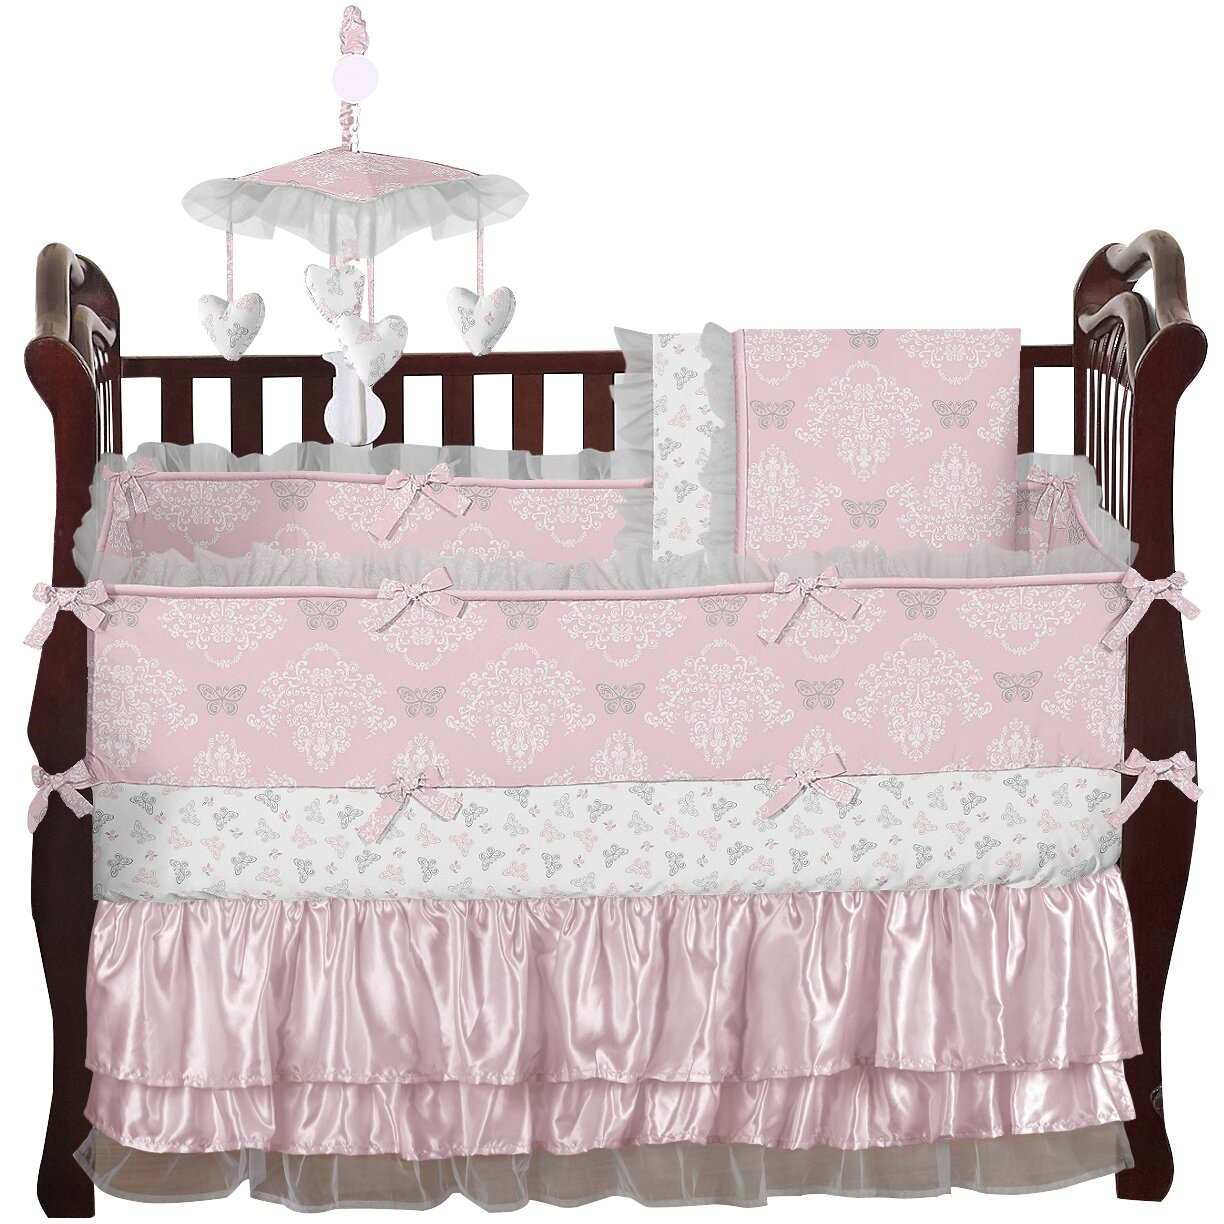 Baby cribs queens ny - Sweet Jojo Designs Alexa 9 Piece Crib Bedding Set